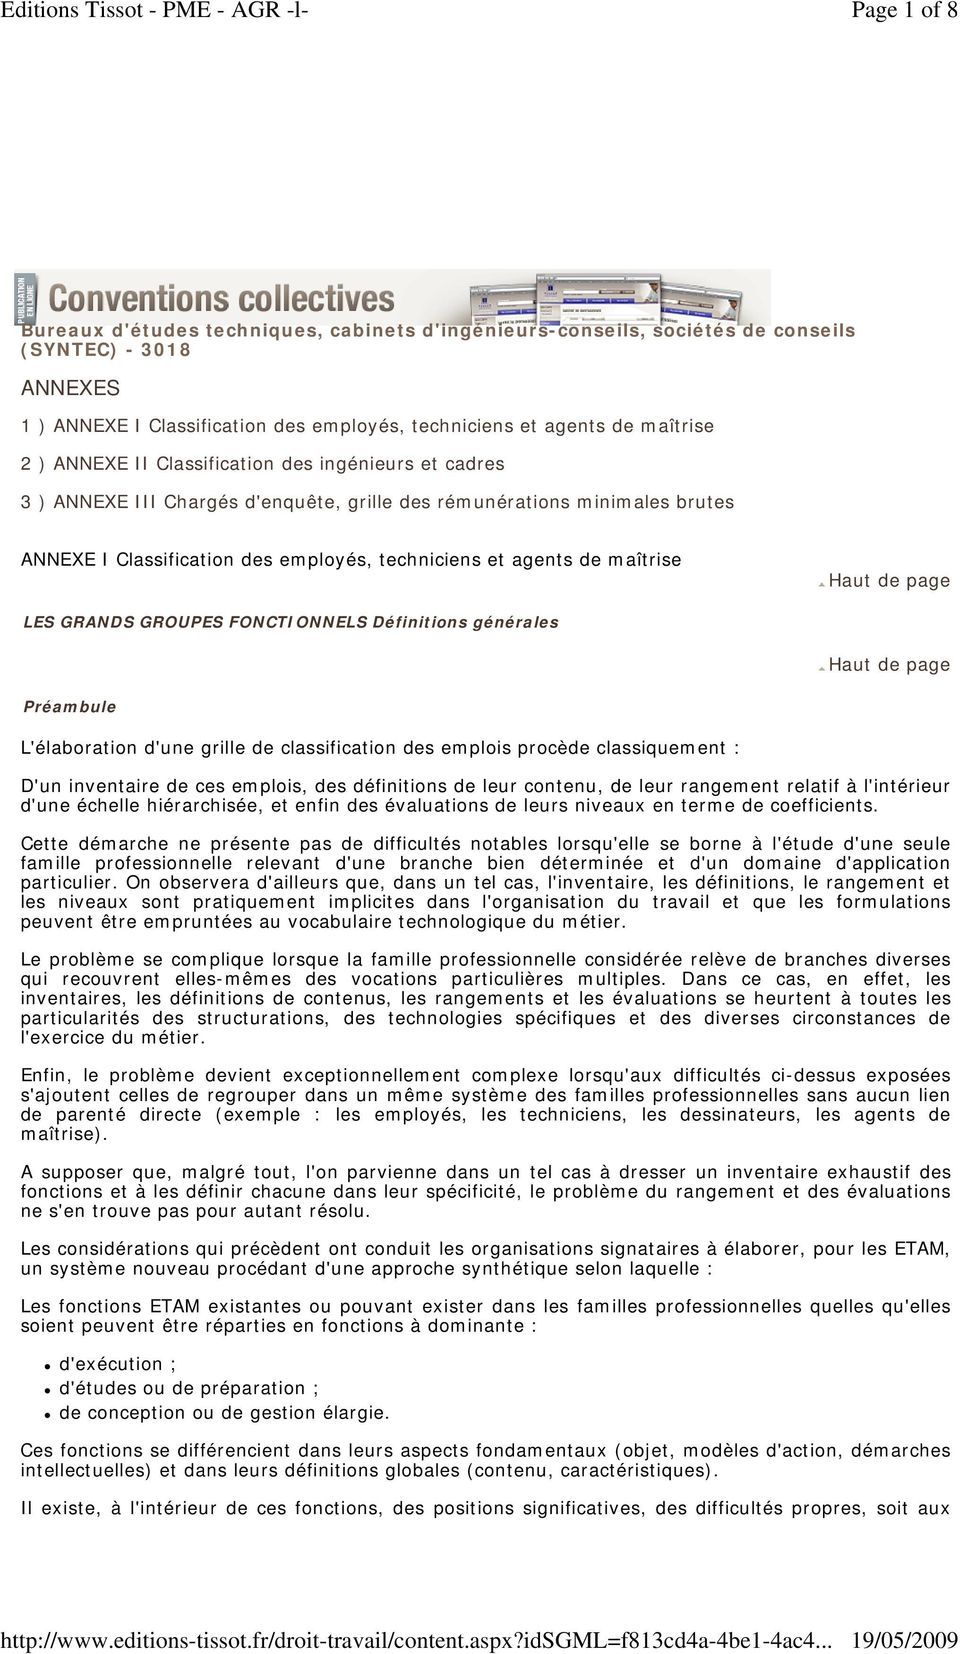 Convention collective syntec annexes accords et avenants pdf - Grille de classification syntec ...